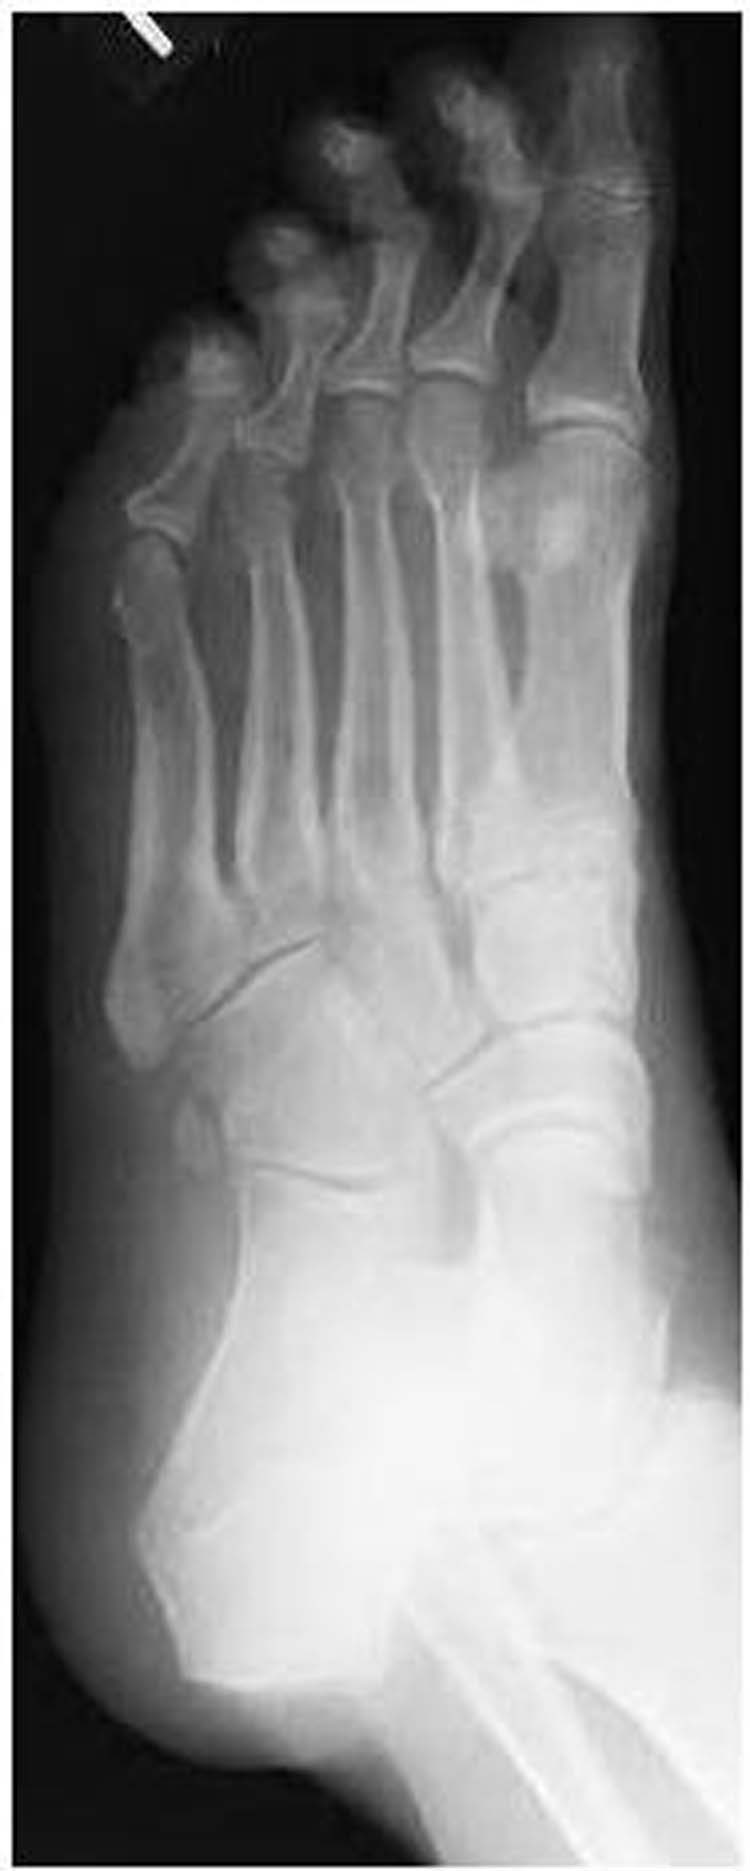 os peroneum | The Foot and Ankle Online Journal